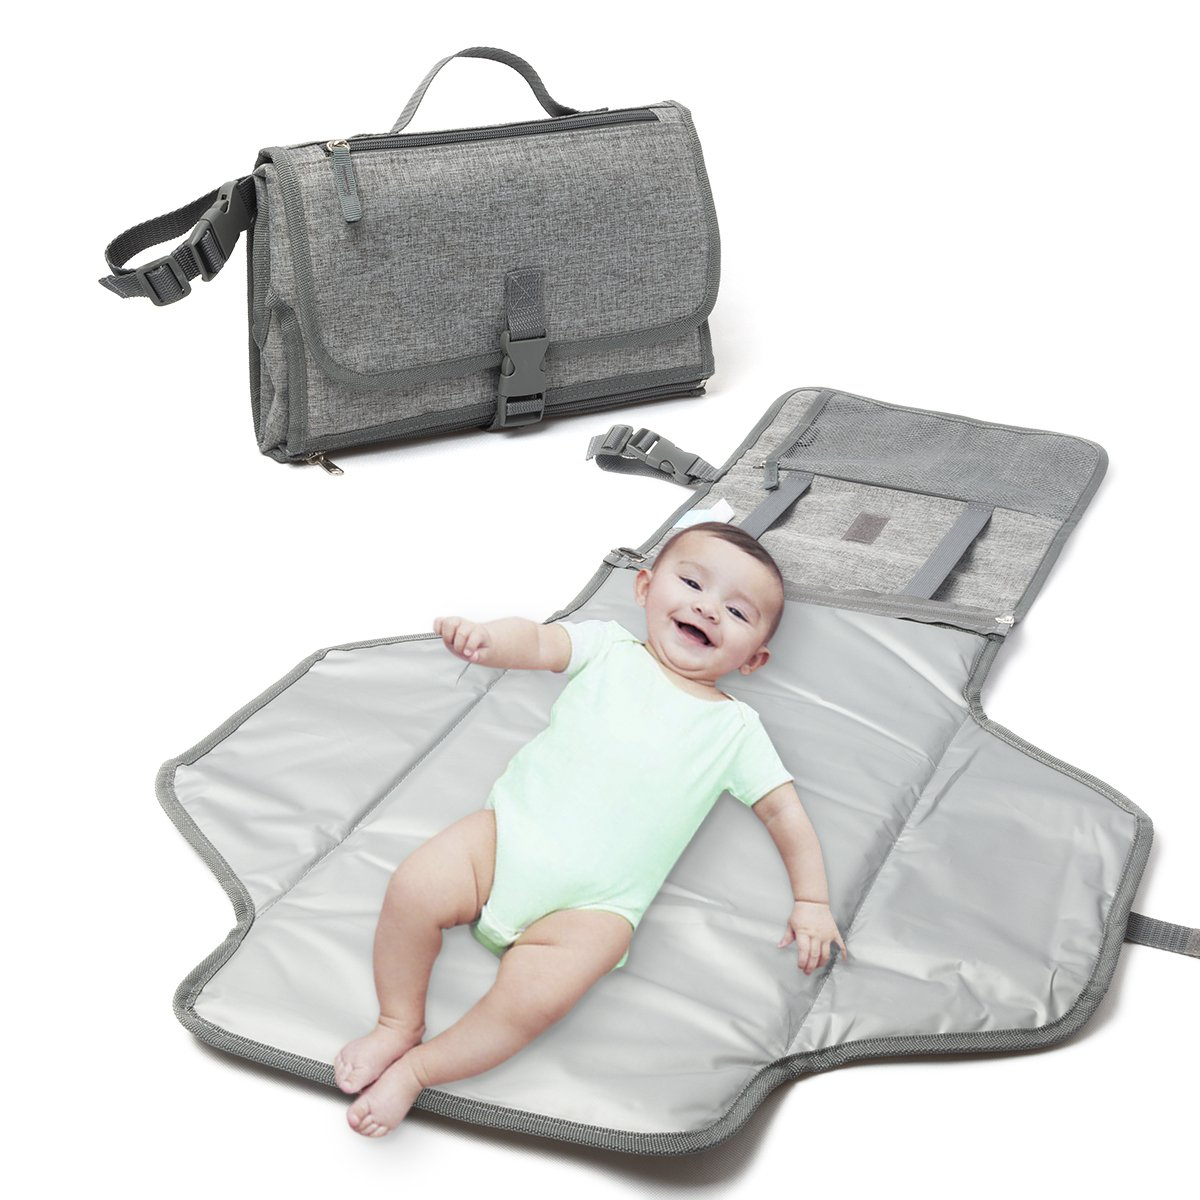 Large Diaper Changing Pad Luxury Clutch Portable Travel Mat for Baby